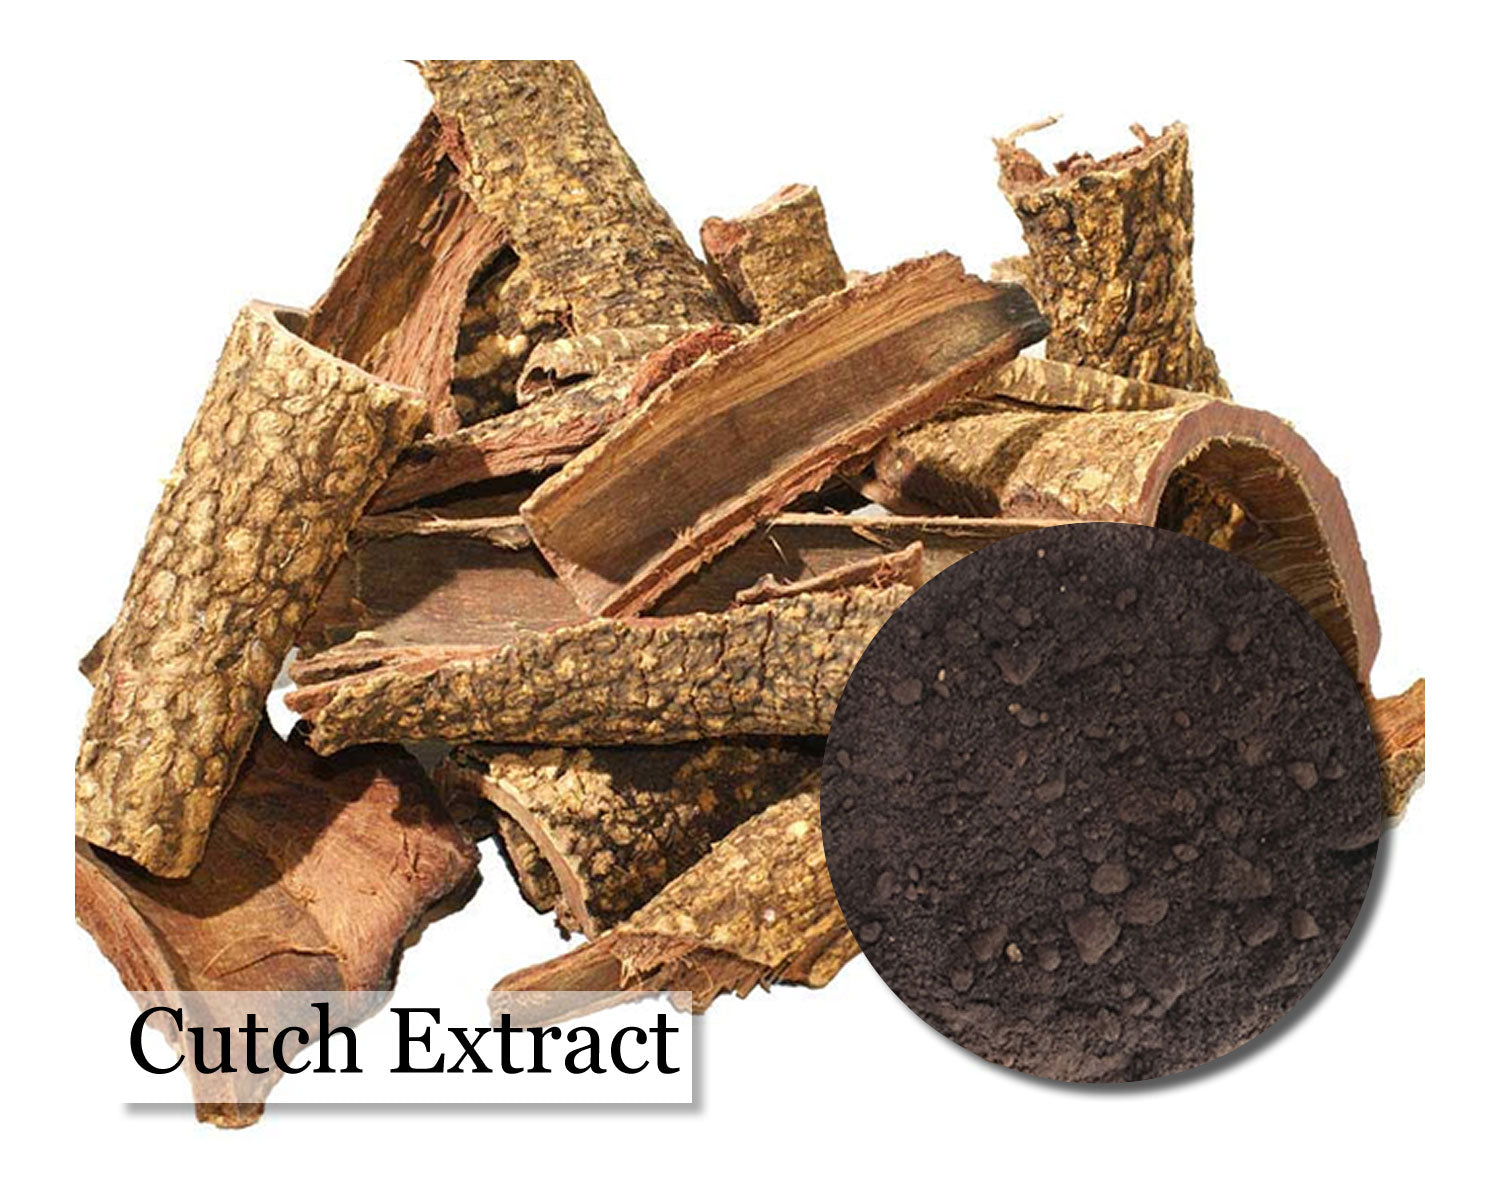 Cutch Extract 1oz